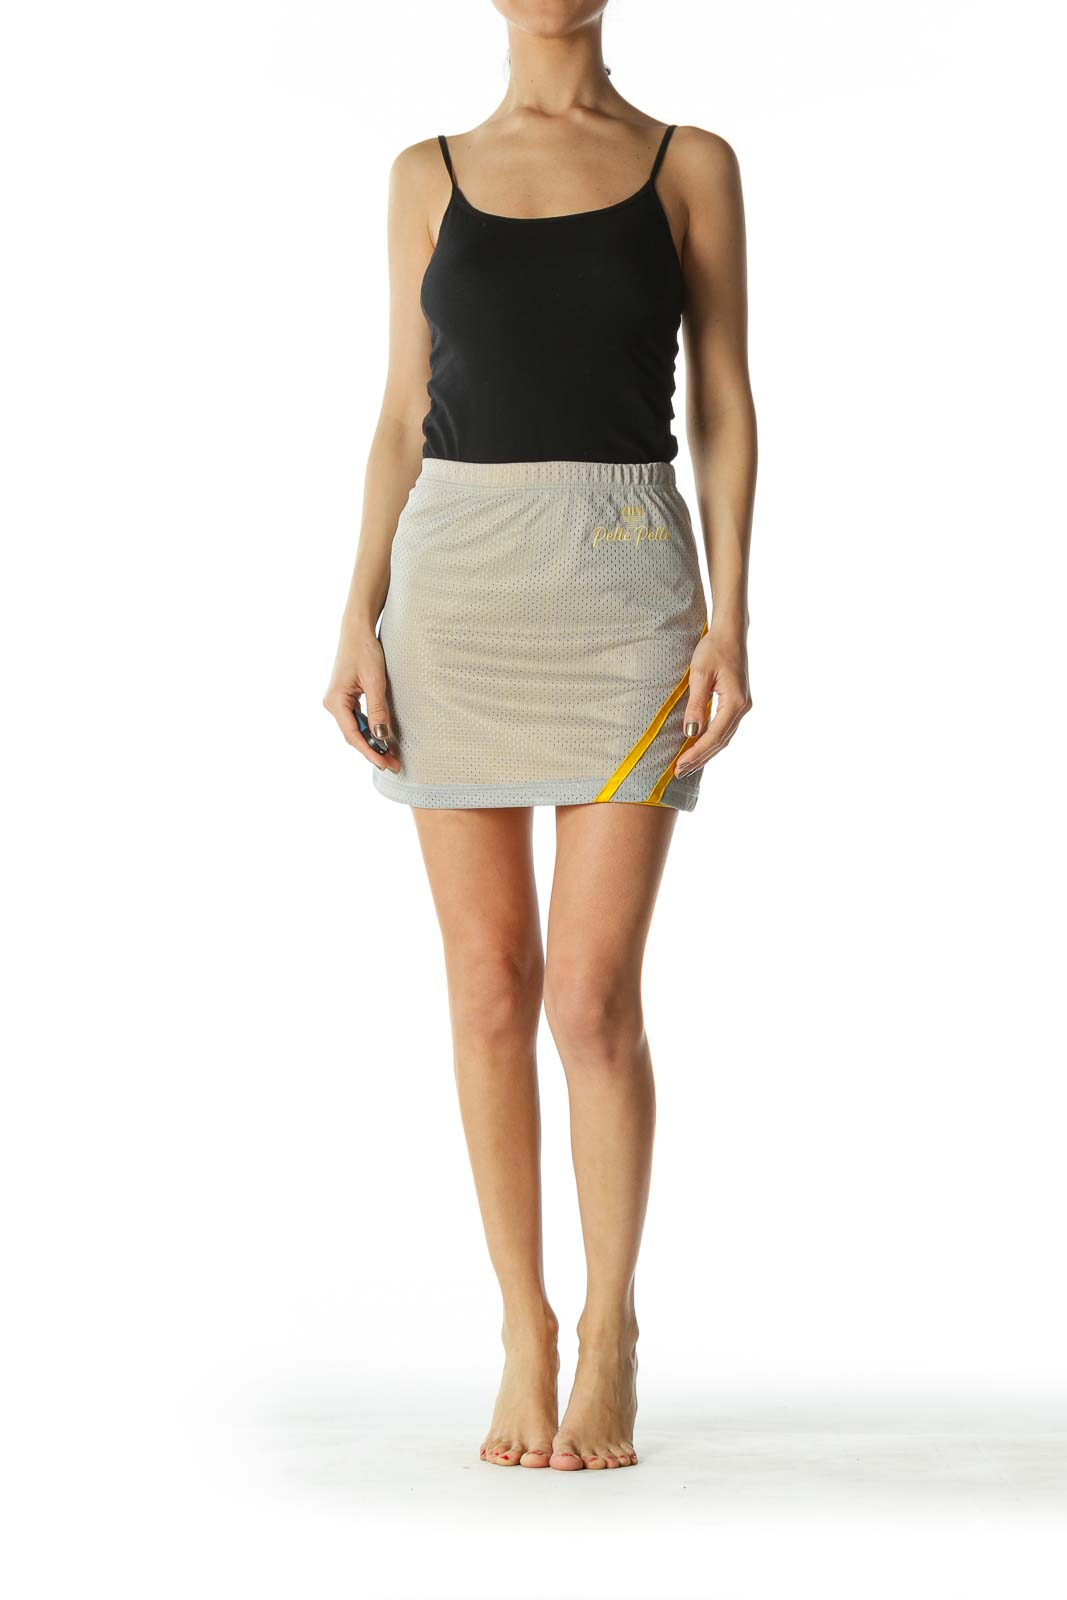 Gray and Yellow Sport Skirt